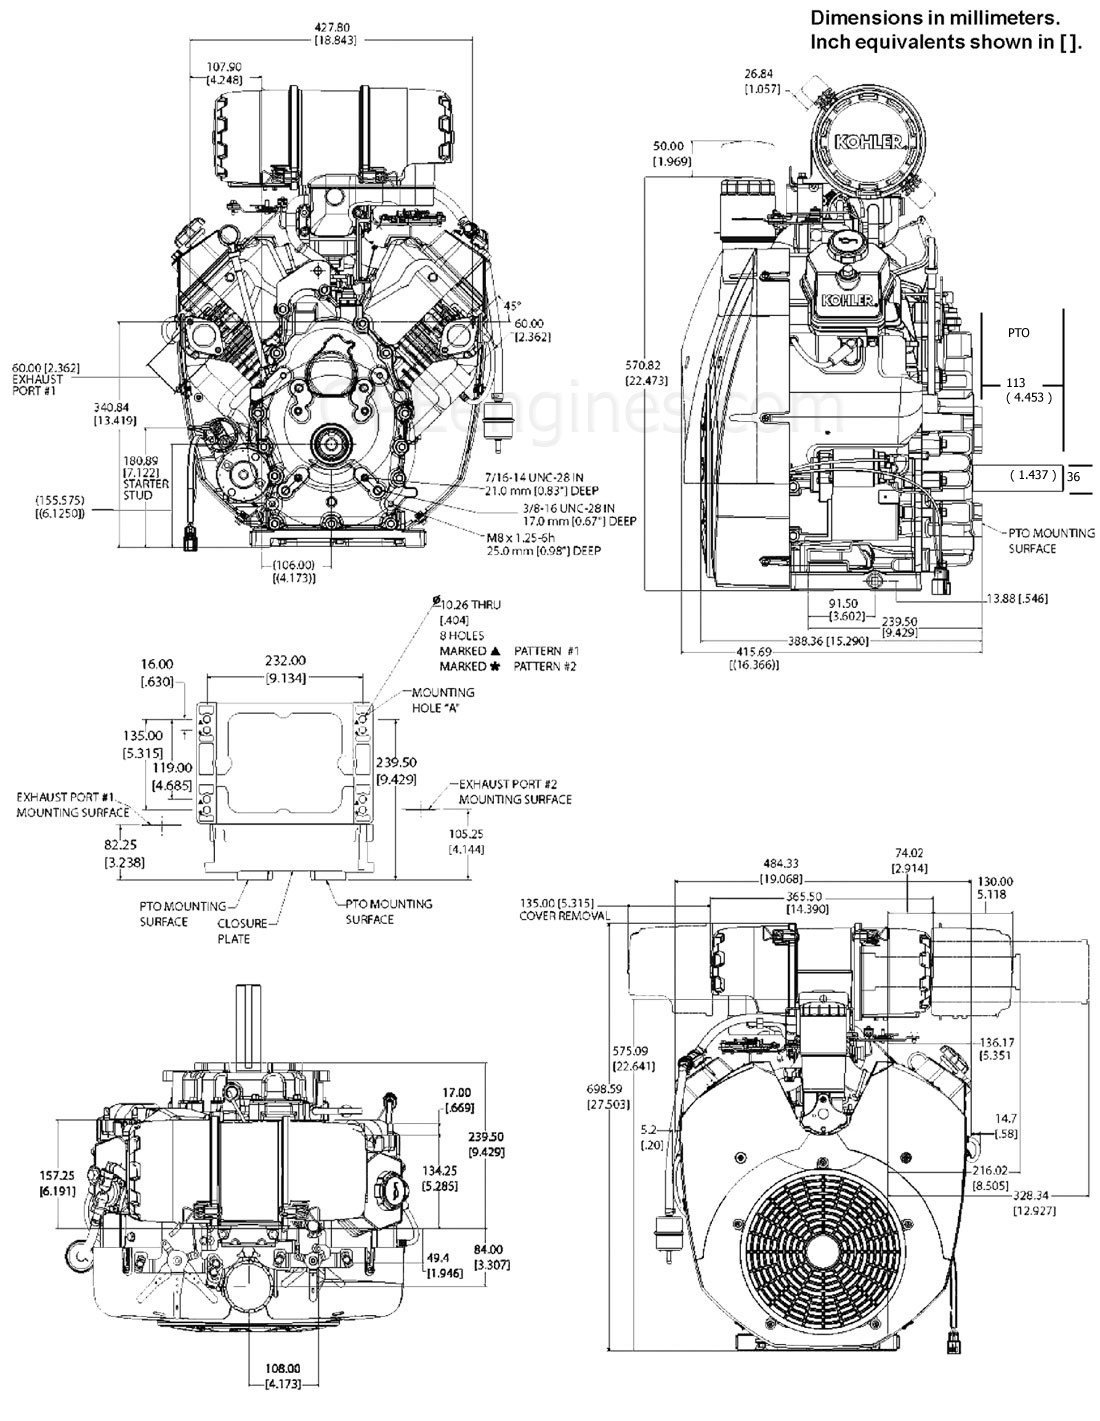 CH980_drawings ch940 ch960 ch980 ch1000 drawings kohler engines and parts store  at soozxer.org